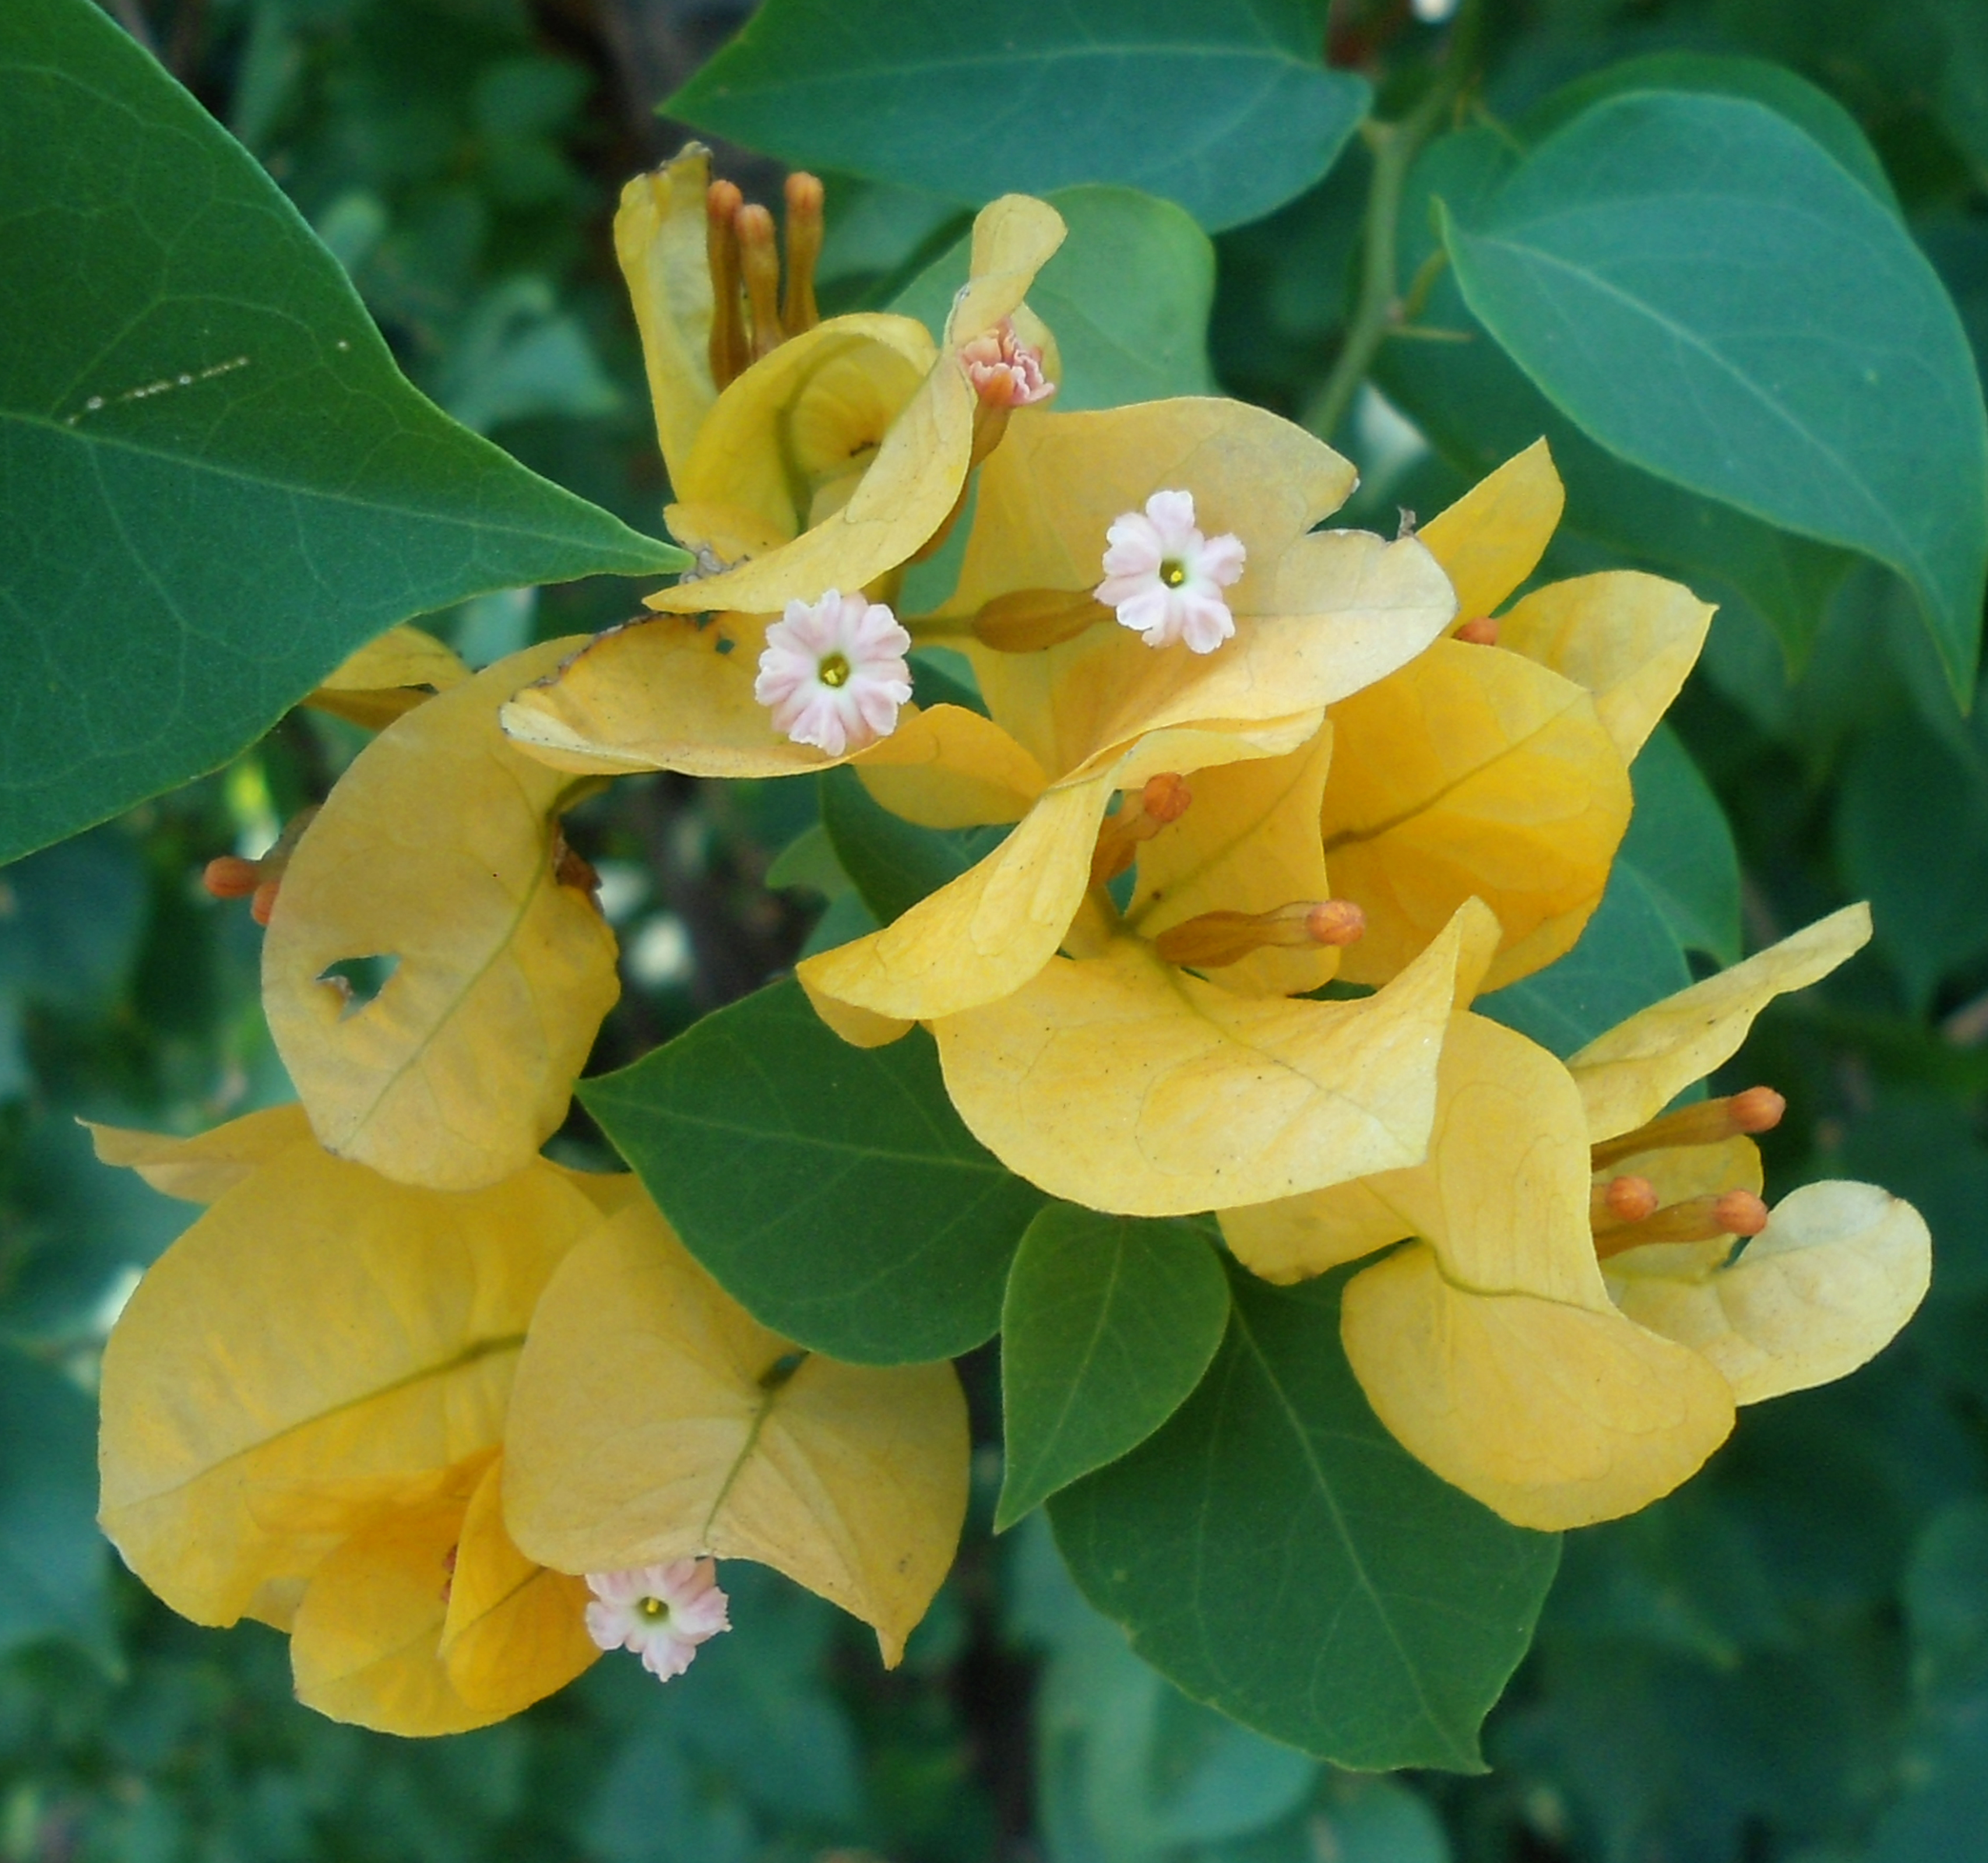 Bougainvillea glabra Images - Useful Tropical Plants